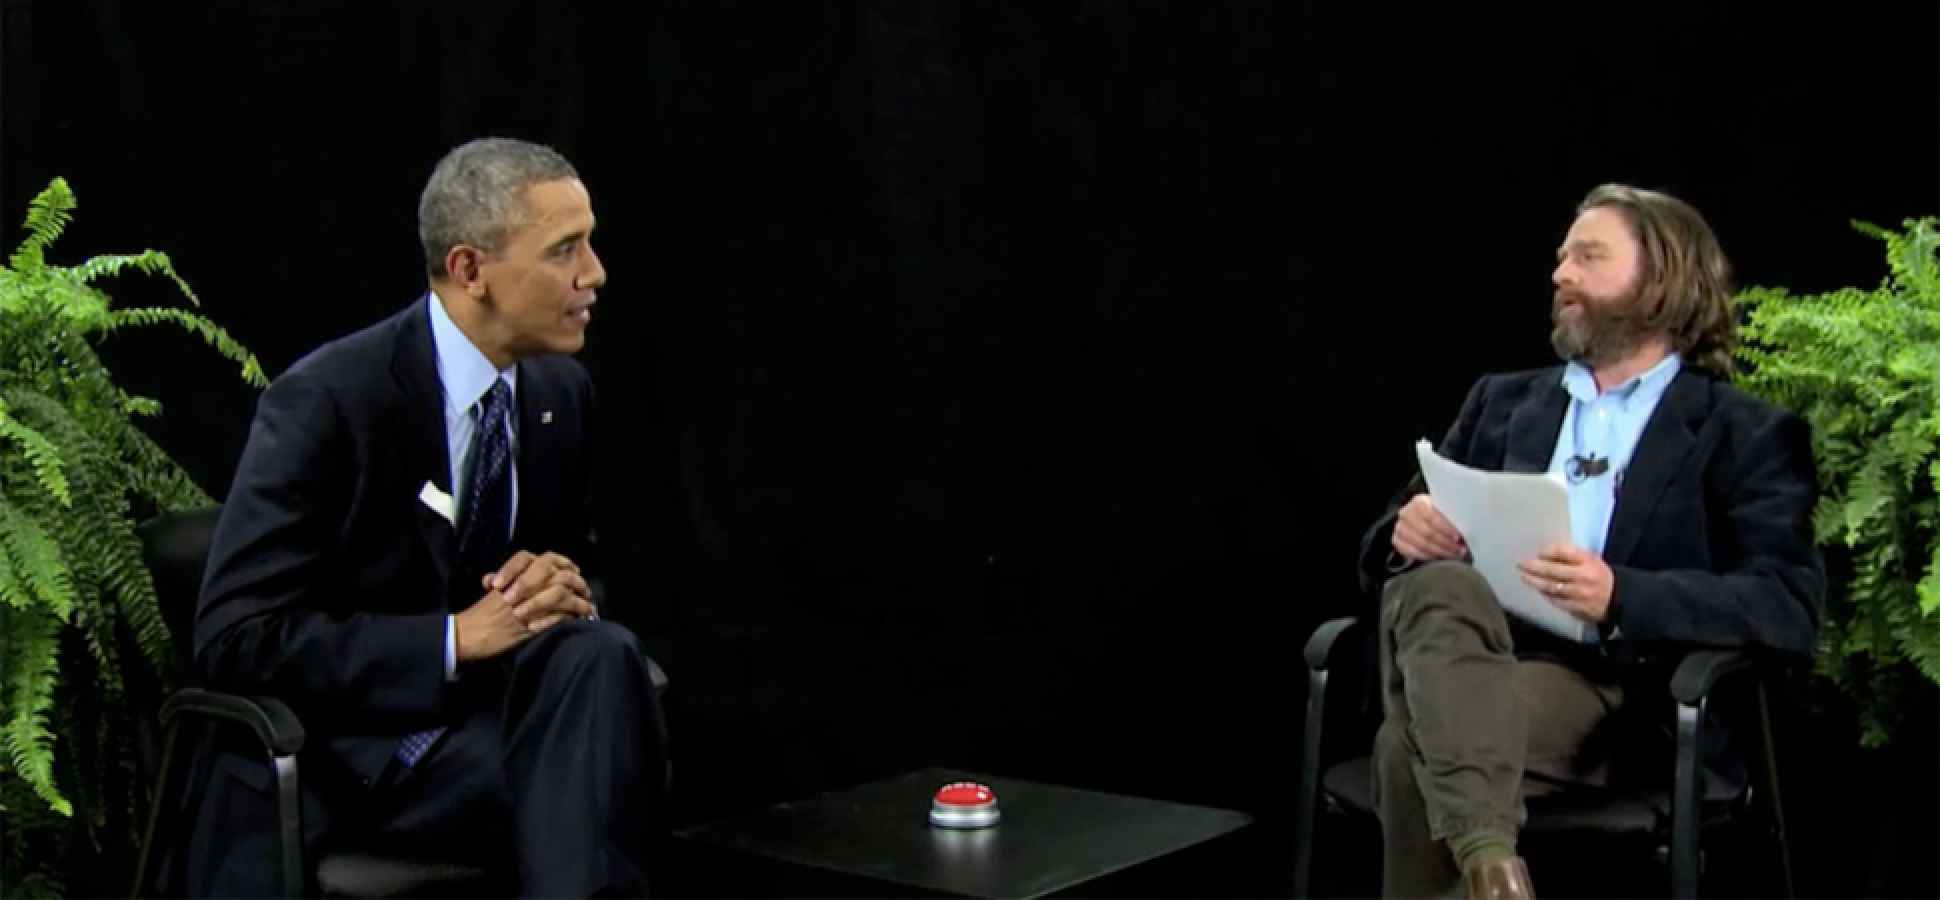 Obama Gives a Lesson on Knowing Your Audience in 'Between Two Ferns'